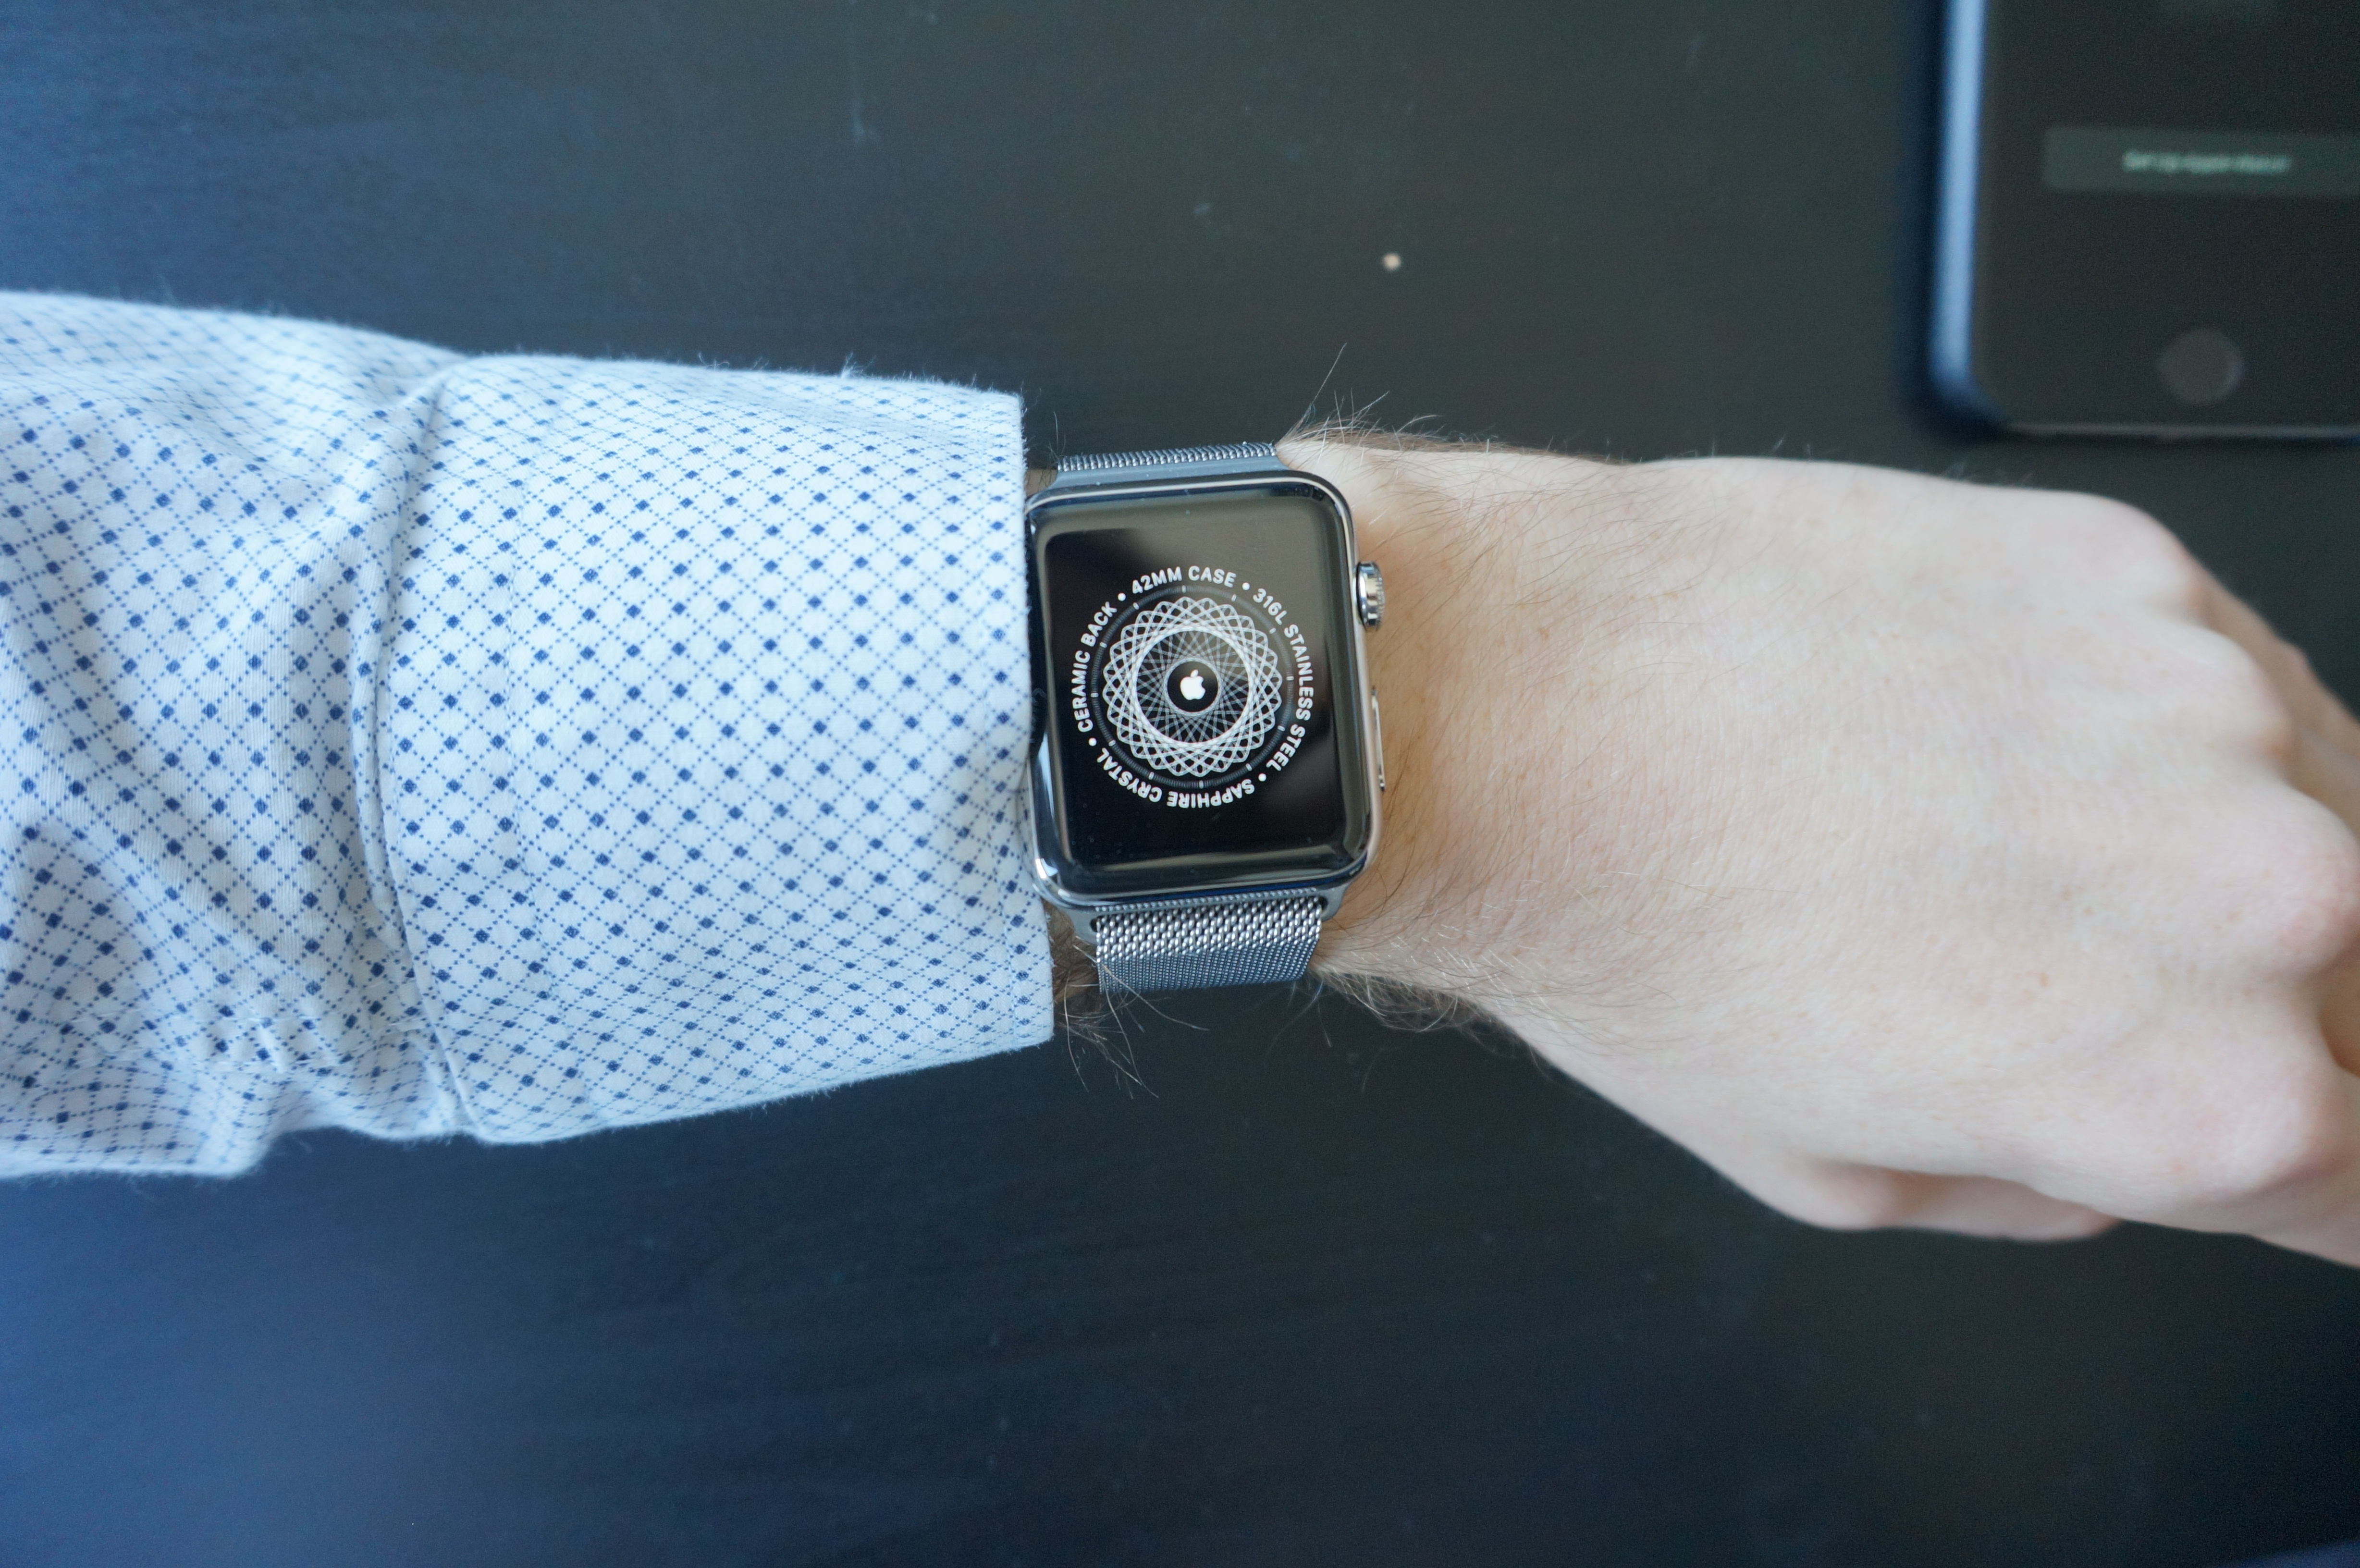 Apple Watch, one week in: First impressions of a wearable-enhanced life